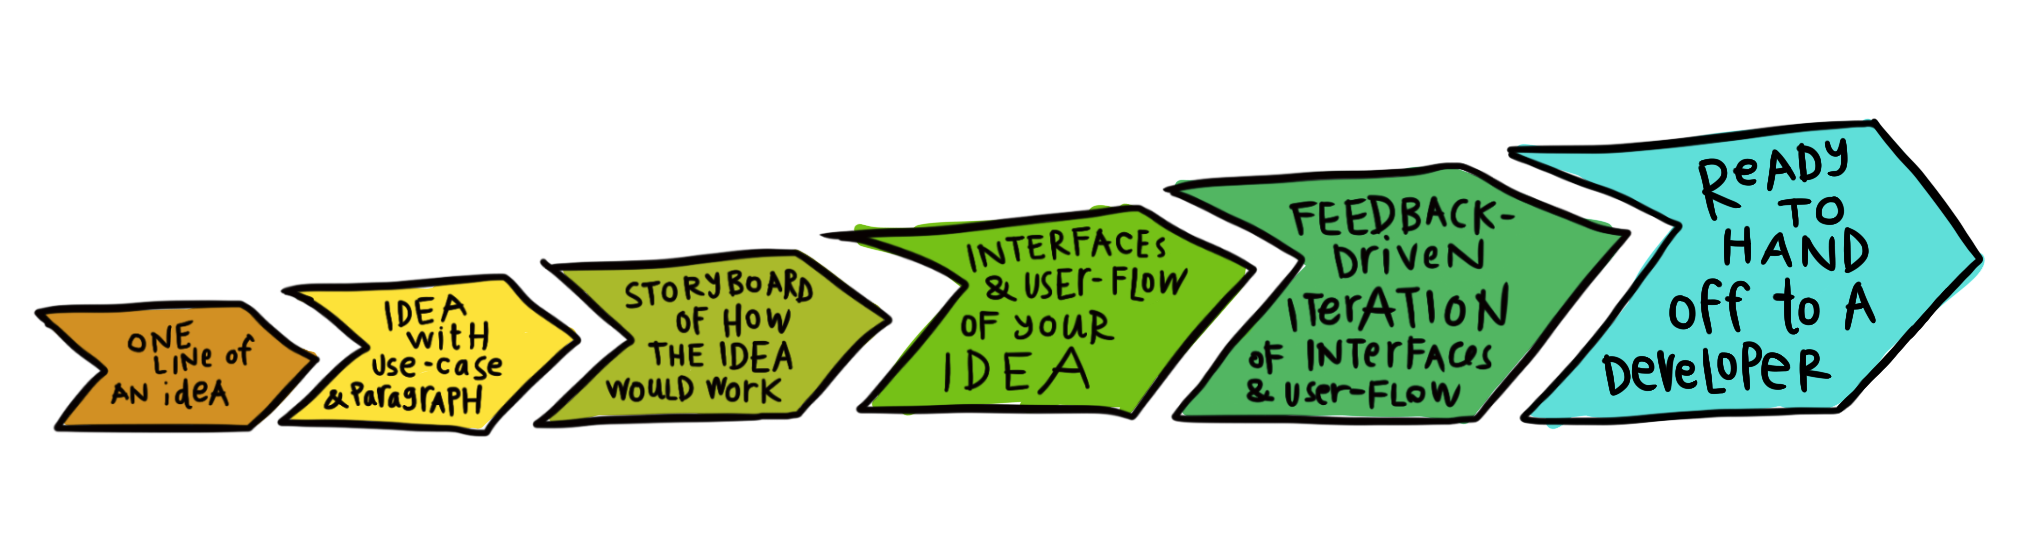 Design Process notes and deliverables